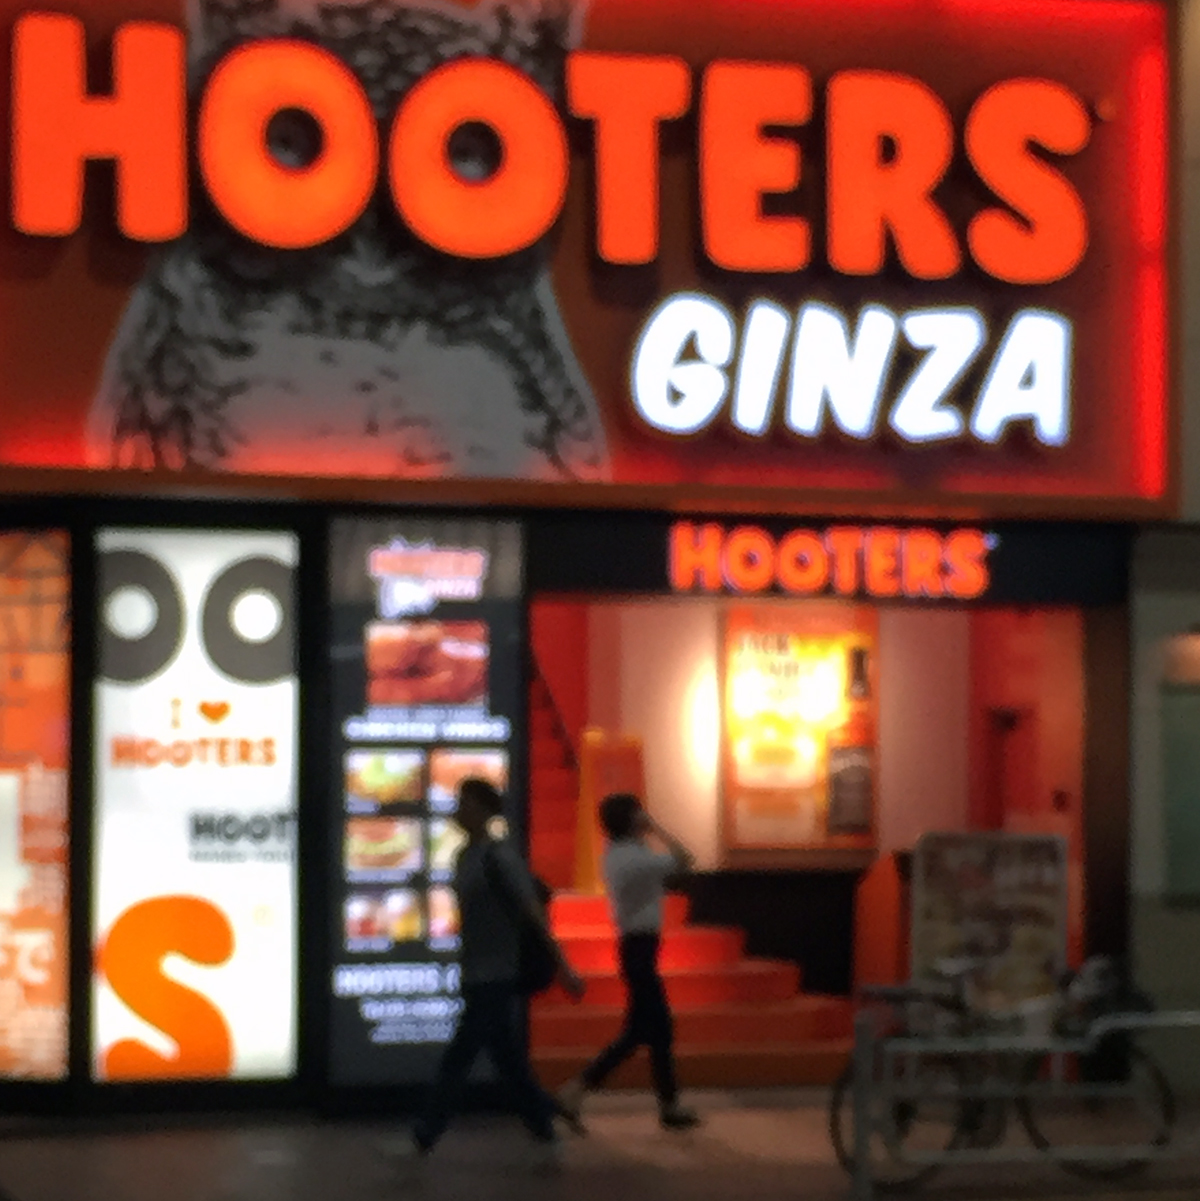 IMG_0851_hooters ginza_MR